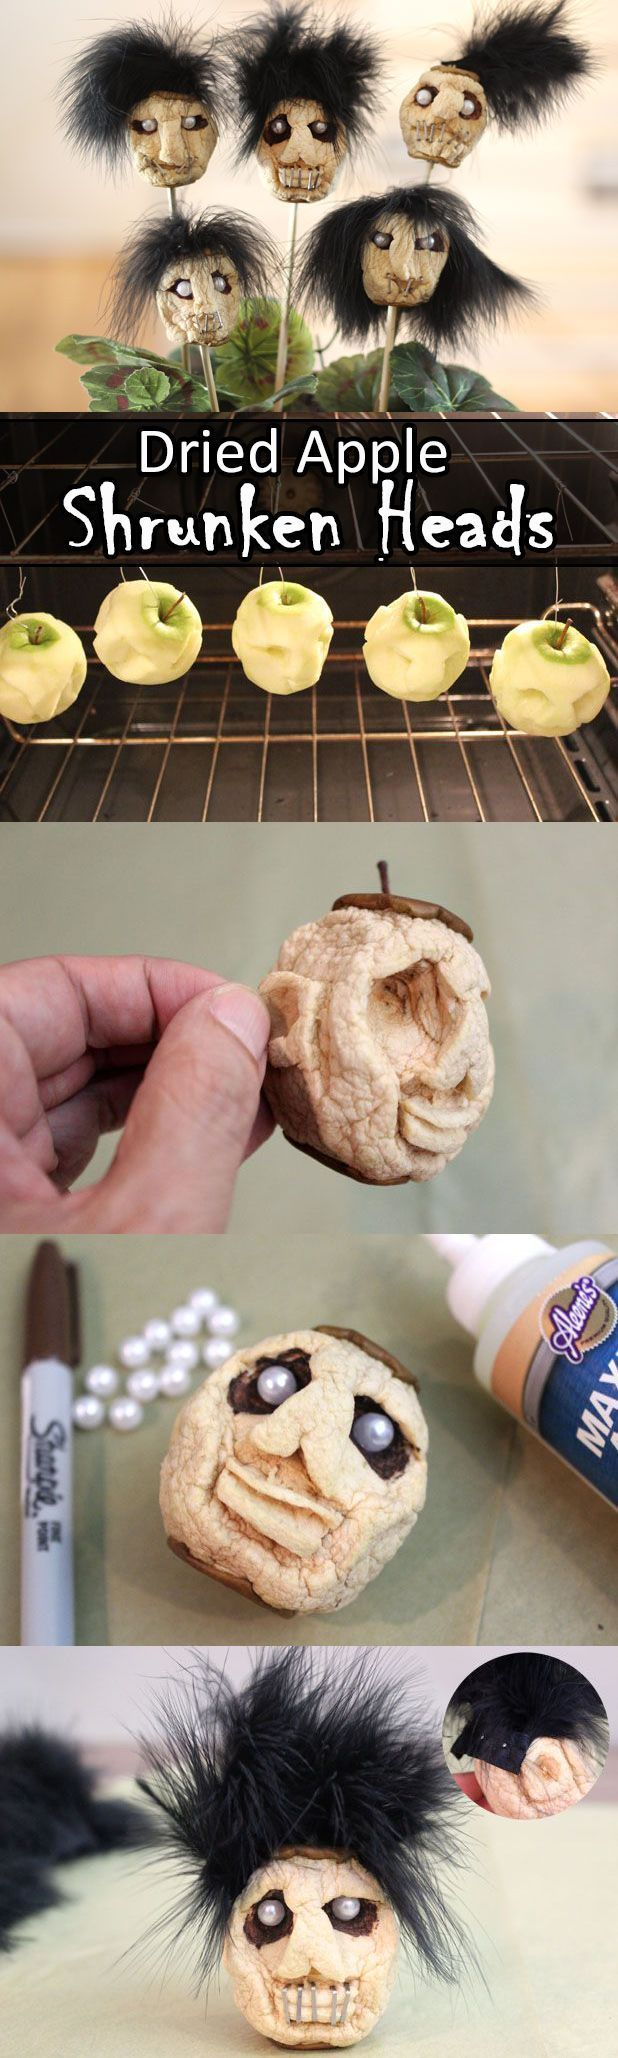 How To Make Dried Shrunken Apple Heads Pictures, Photos, and Images for Facebook, Tumblr, Pinterest, and Twitter